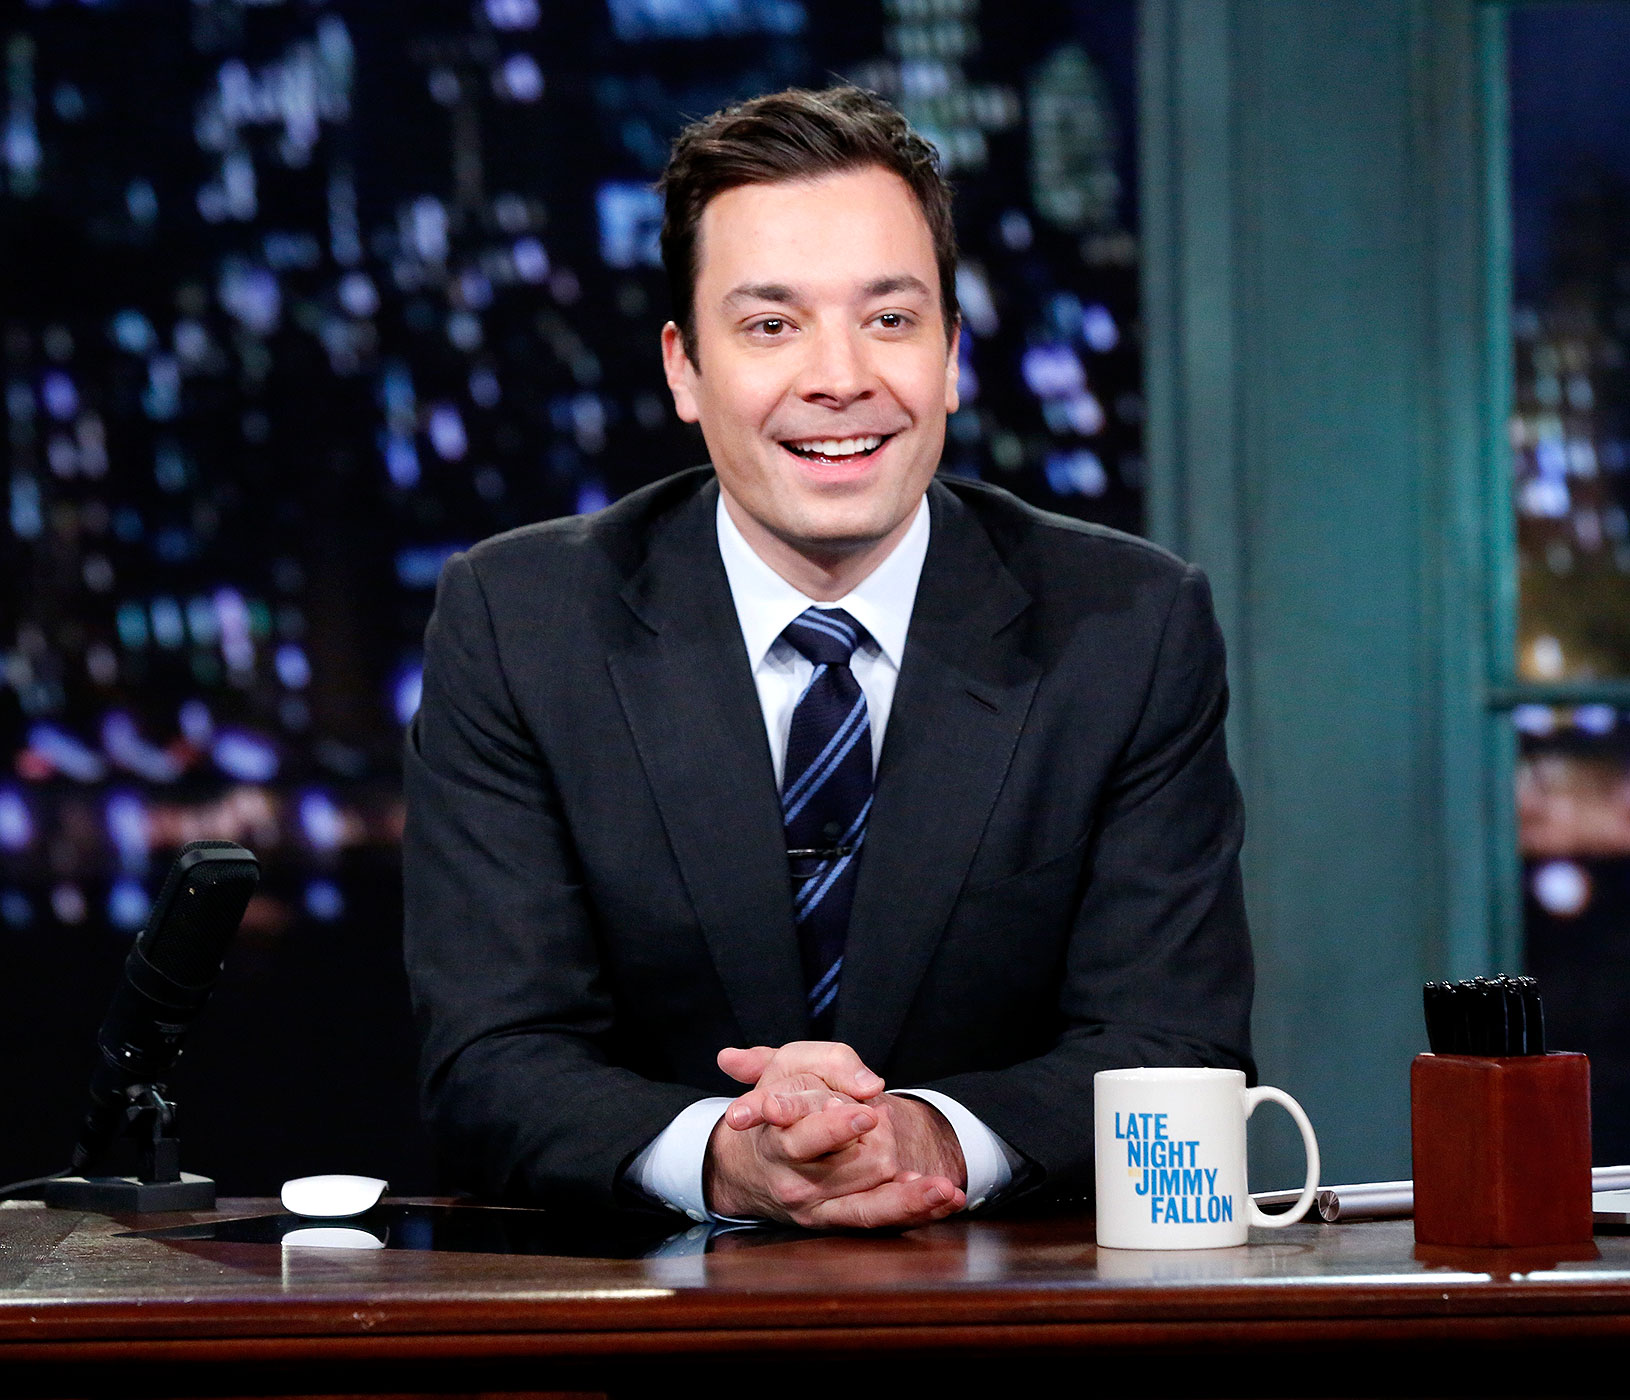 Broken Screen Wallpaper 3d Jimmy Fallon Wallpapers Pictures Images